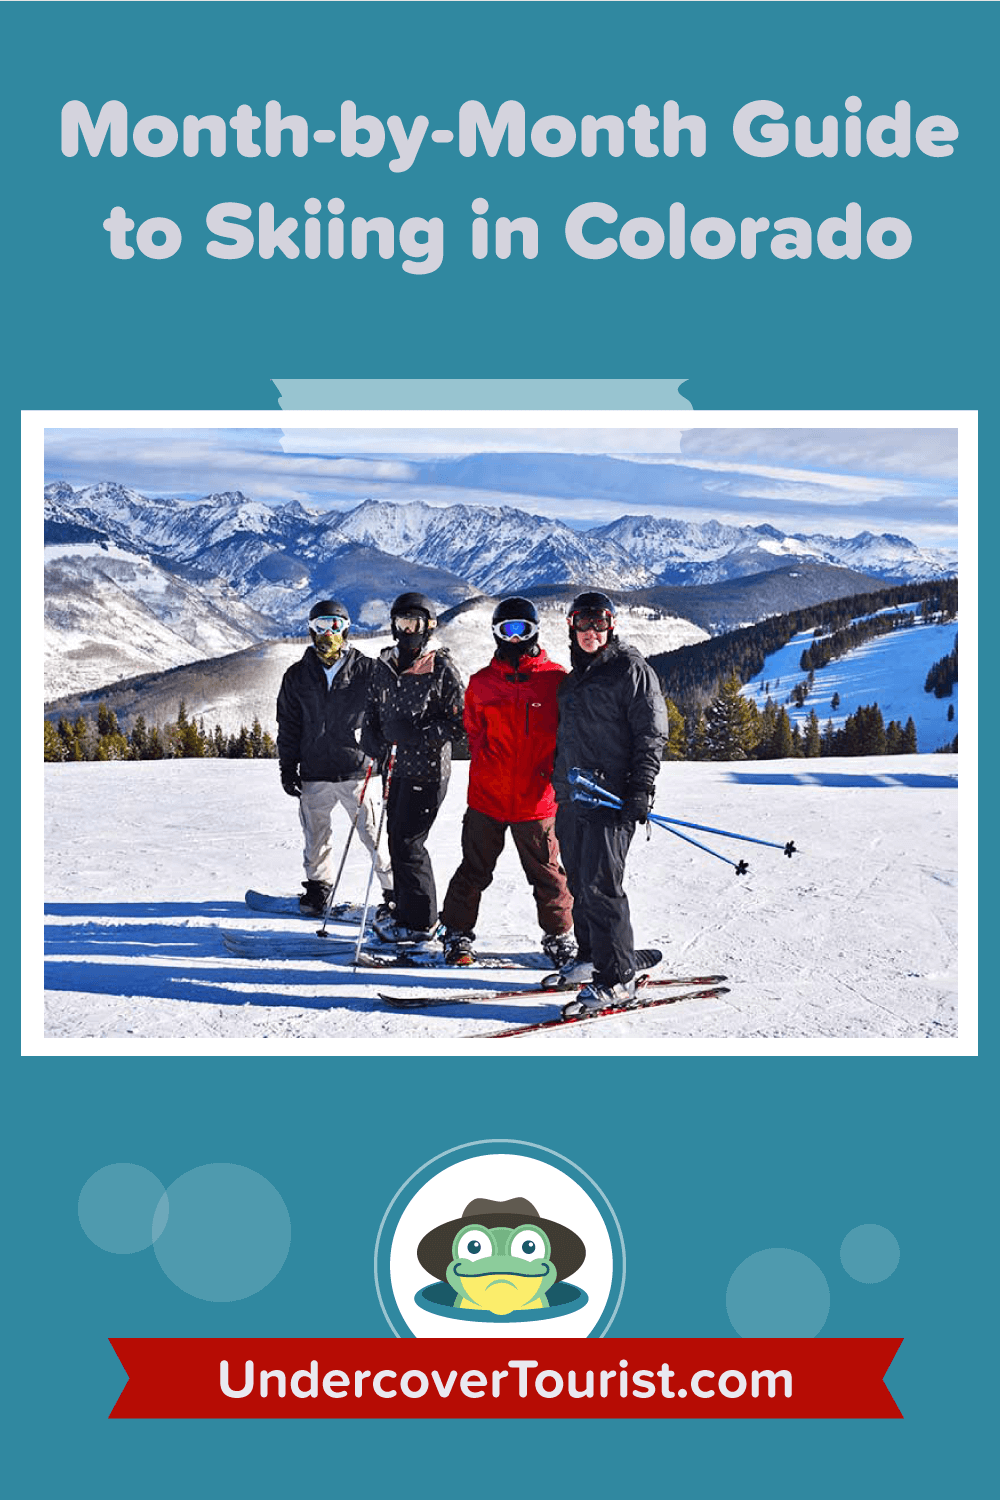 Month-by-Month Guide to Skiing in Colorado